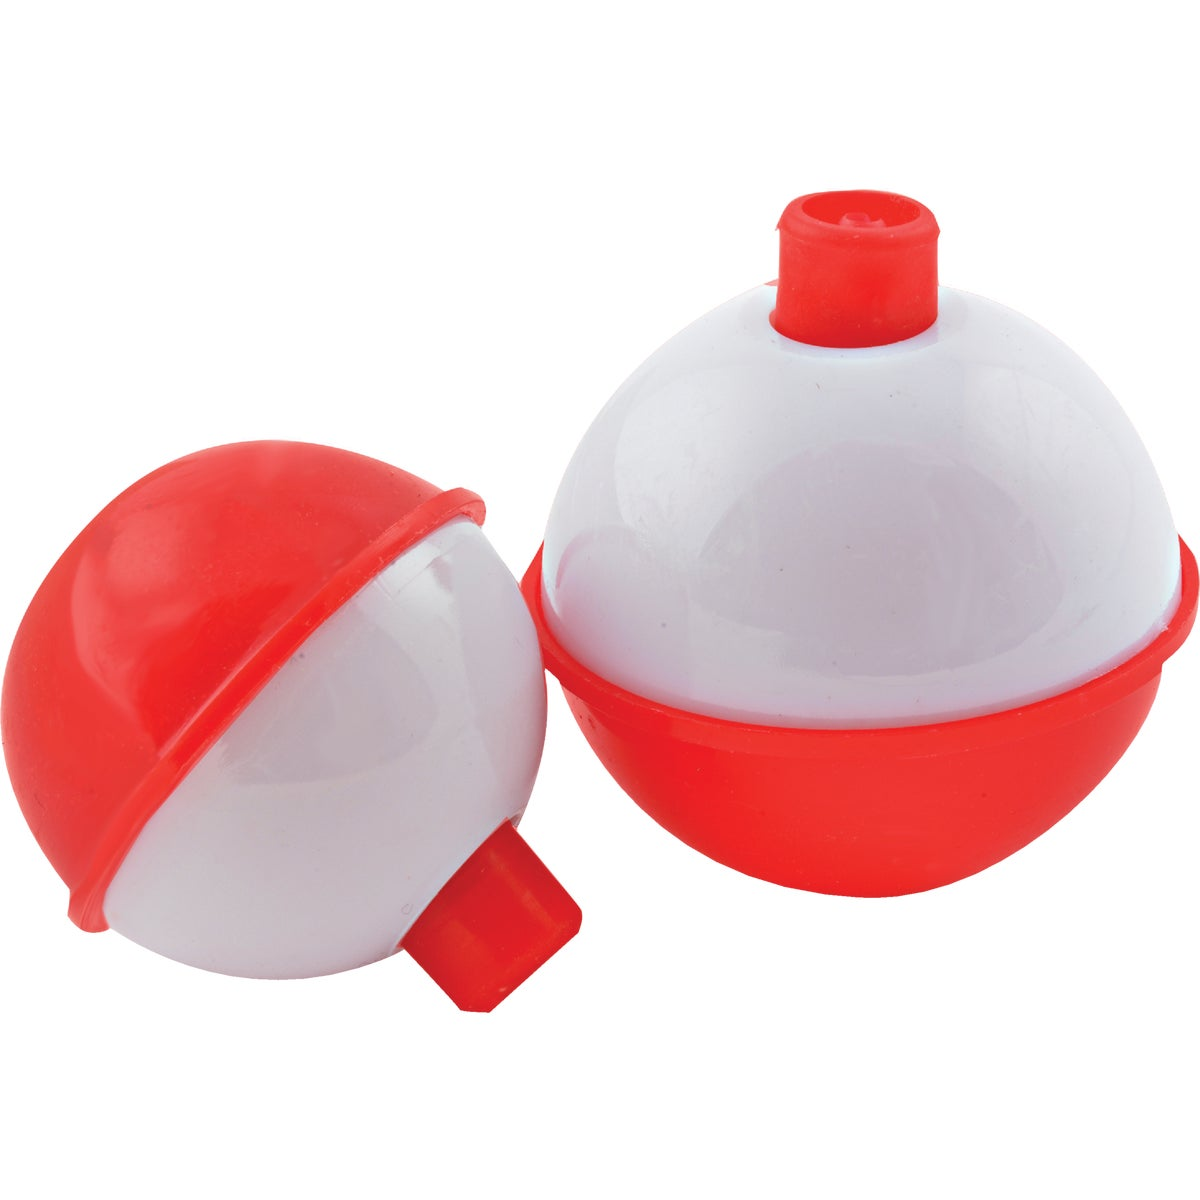 ASTD PUSH-BUTTON FLOATS